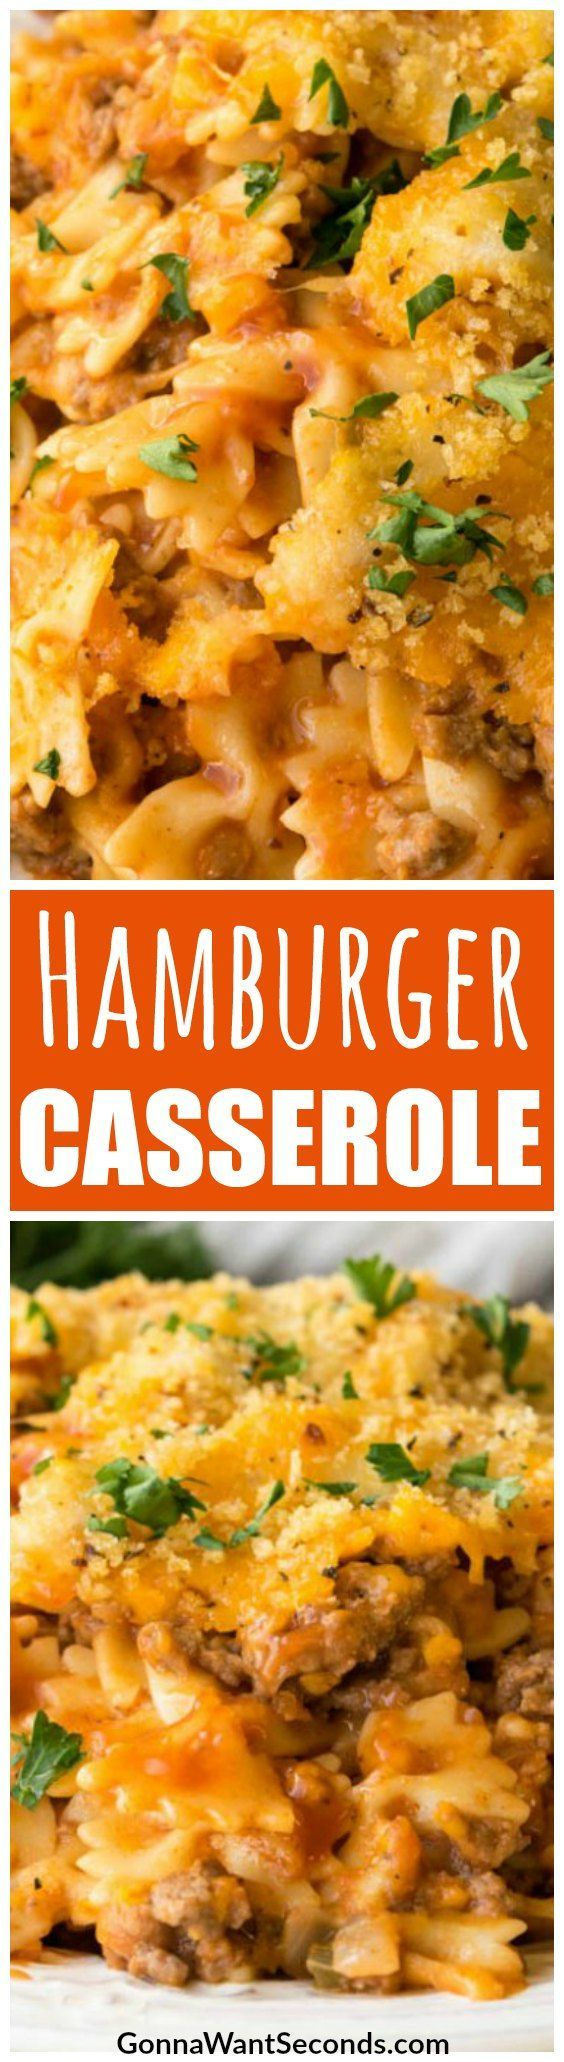 This Easy, Cheesy Hamburger Casserole is Destined to Become one of Your Favorite Recipes! Made with Ground Beef or Turkey, with Noodles, Cheese and a Delicious Sauce, Your Family Will Think its one of the Best Dinners in Your Rotation. #Recipes #Easy #WithNoodles #Cheesy #Crockpot #Dinners #Beef #One